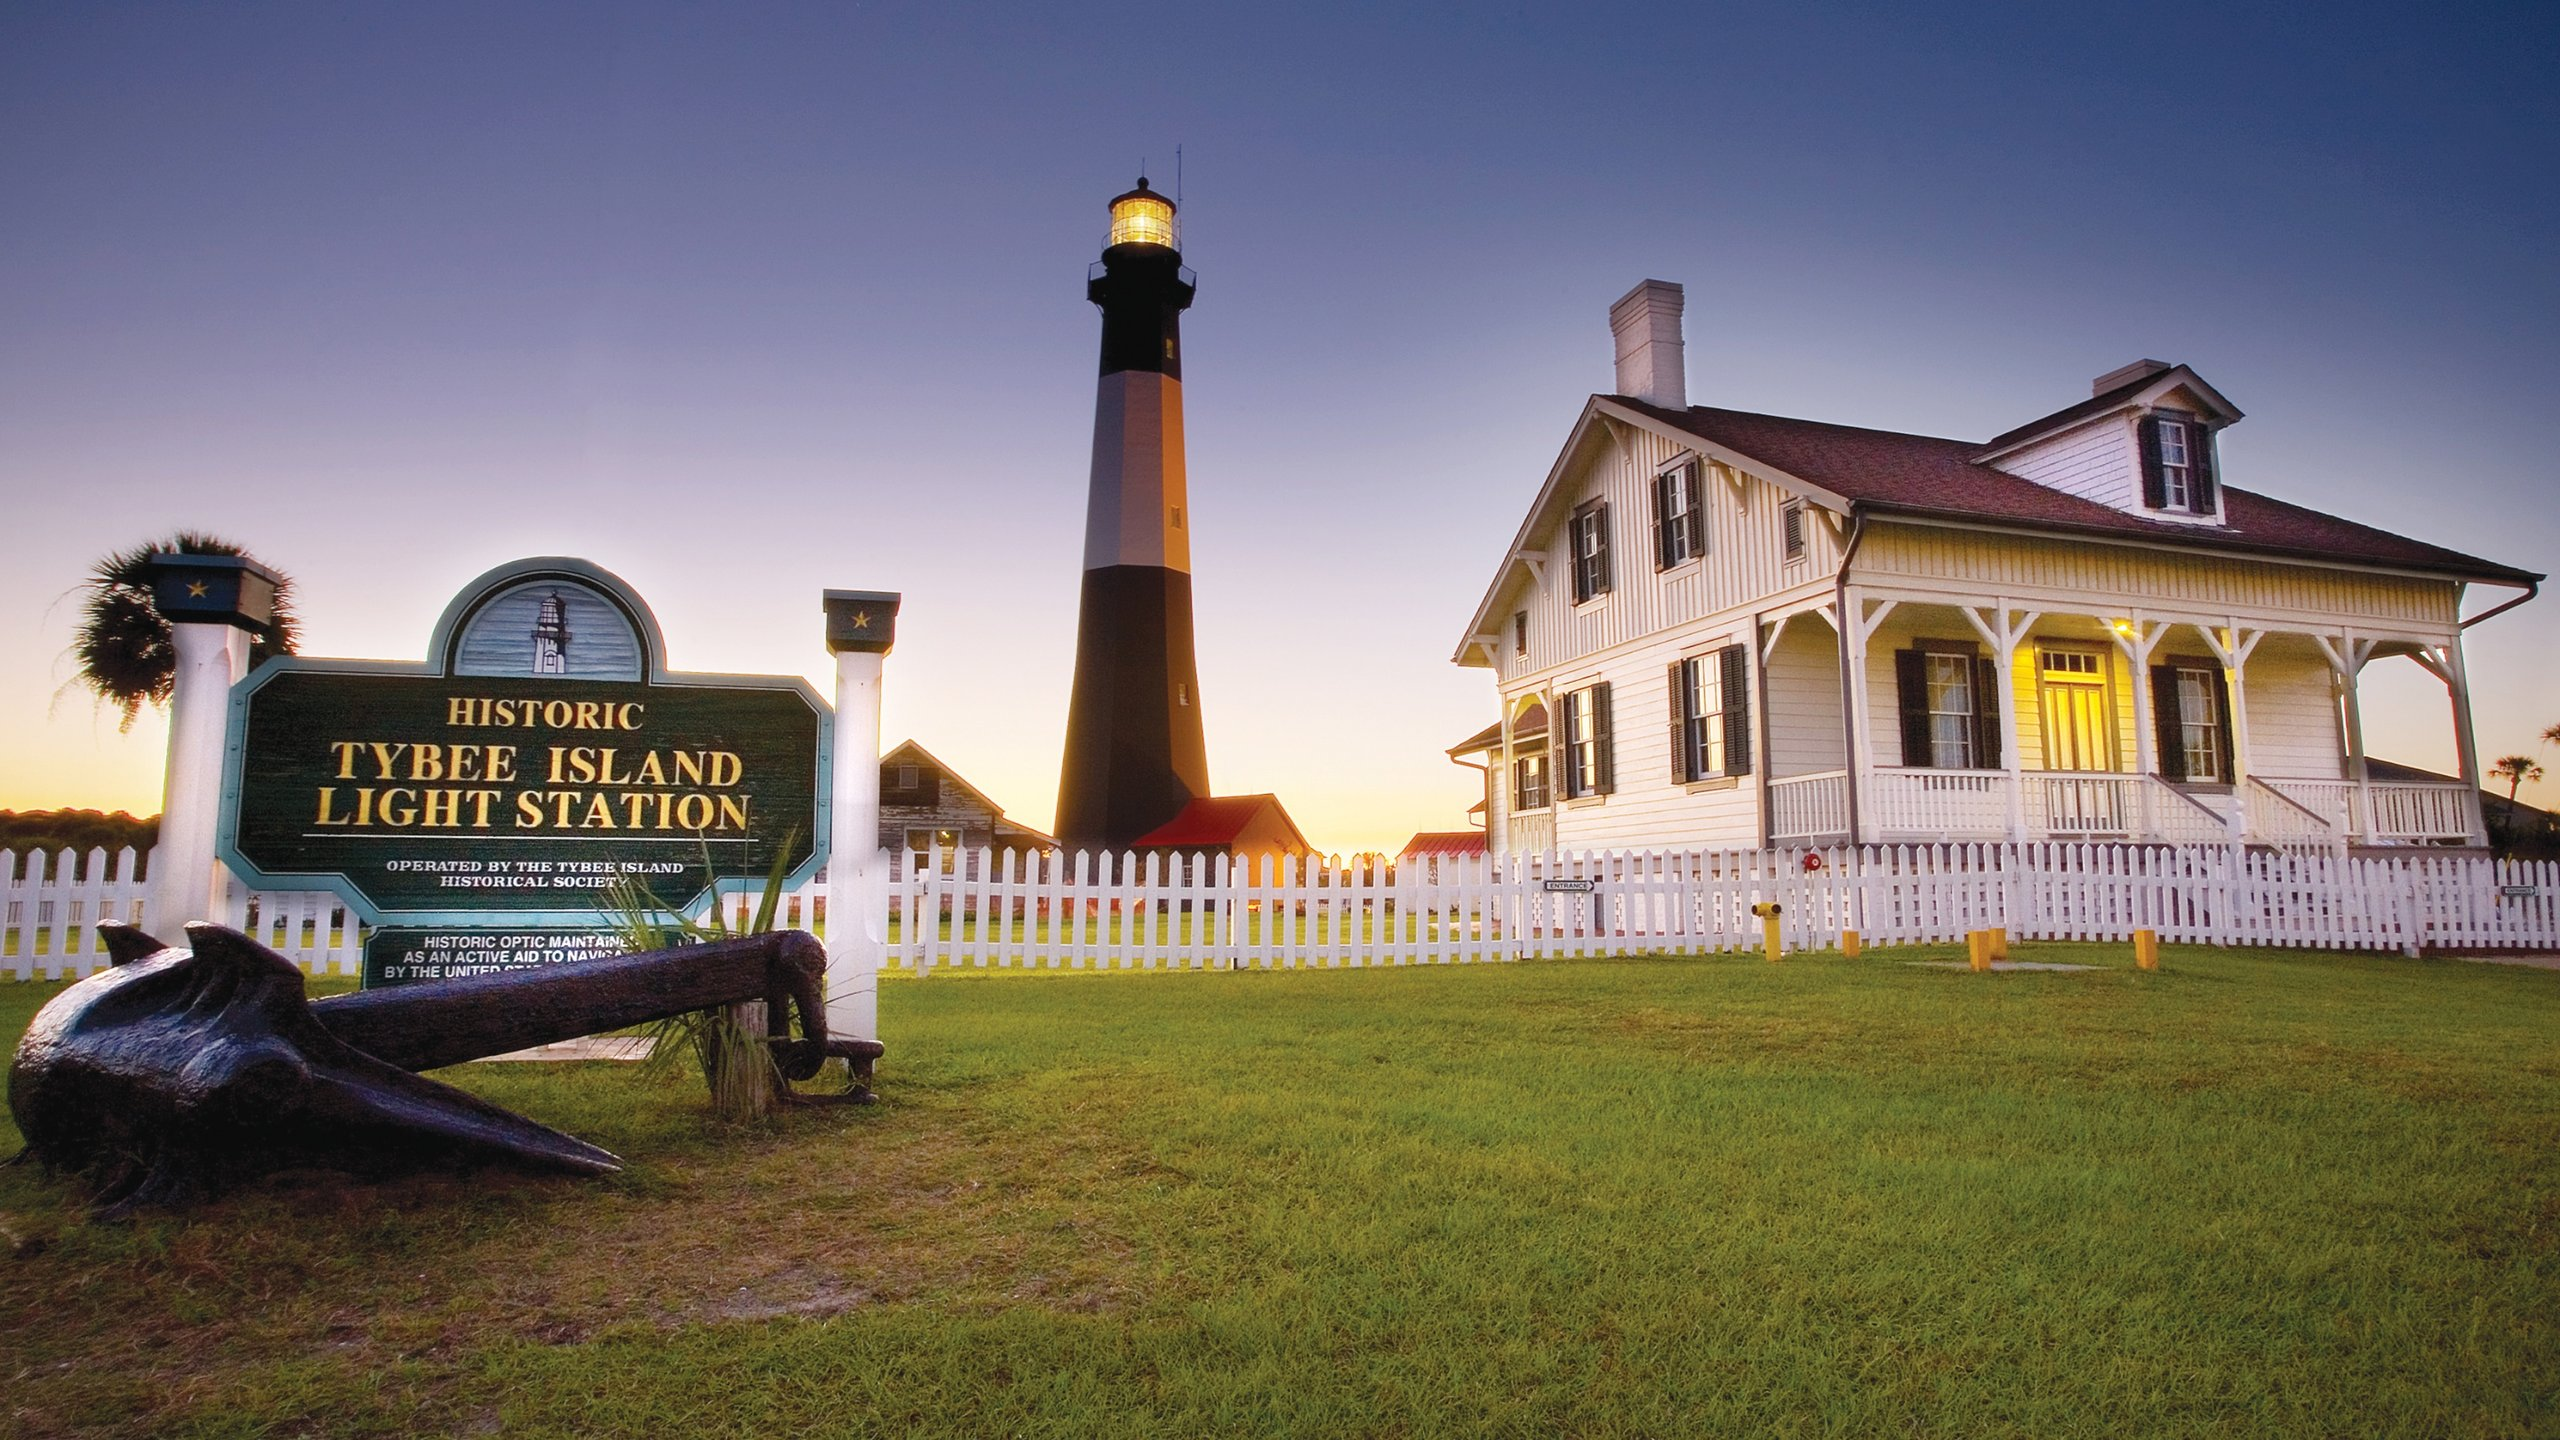 10 Best Hotels With Jacuzzis Hot Tubs In Tybee Island For 2019 Expedia